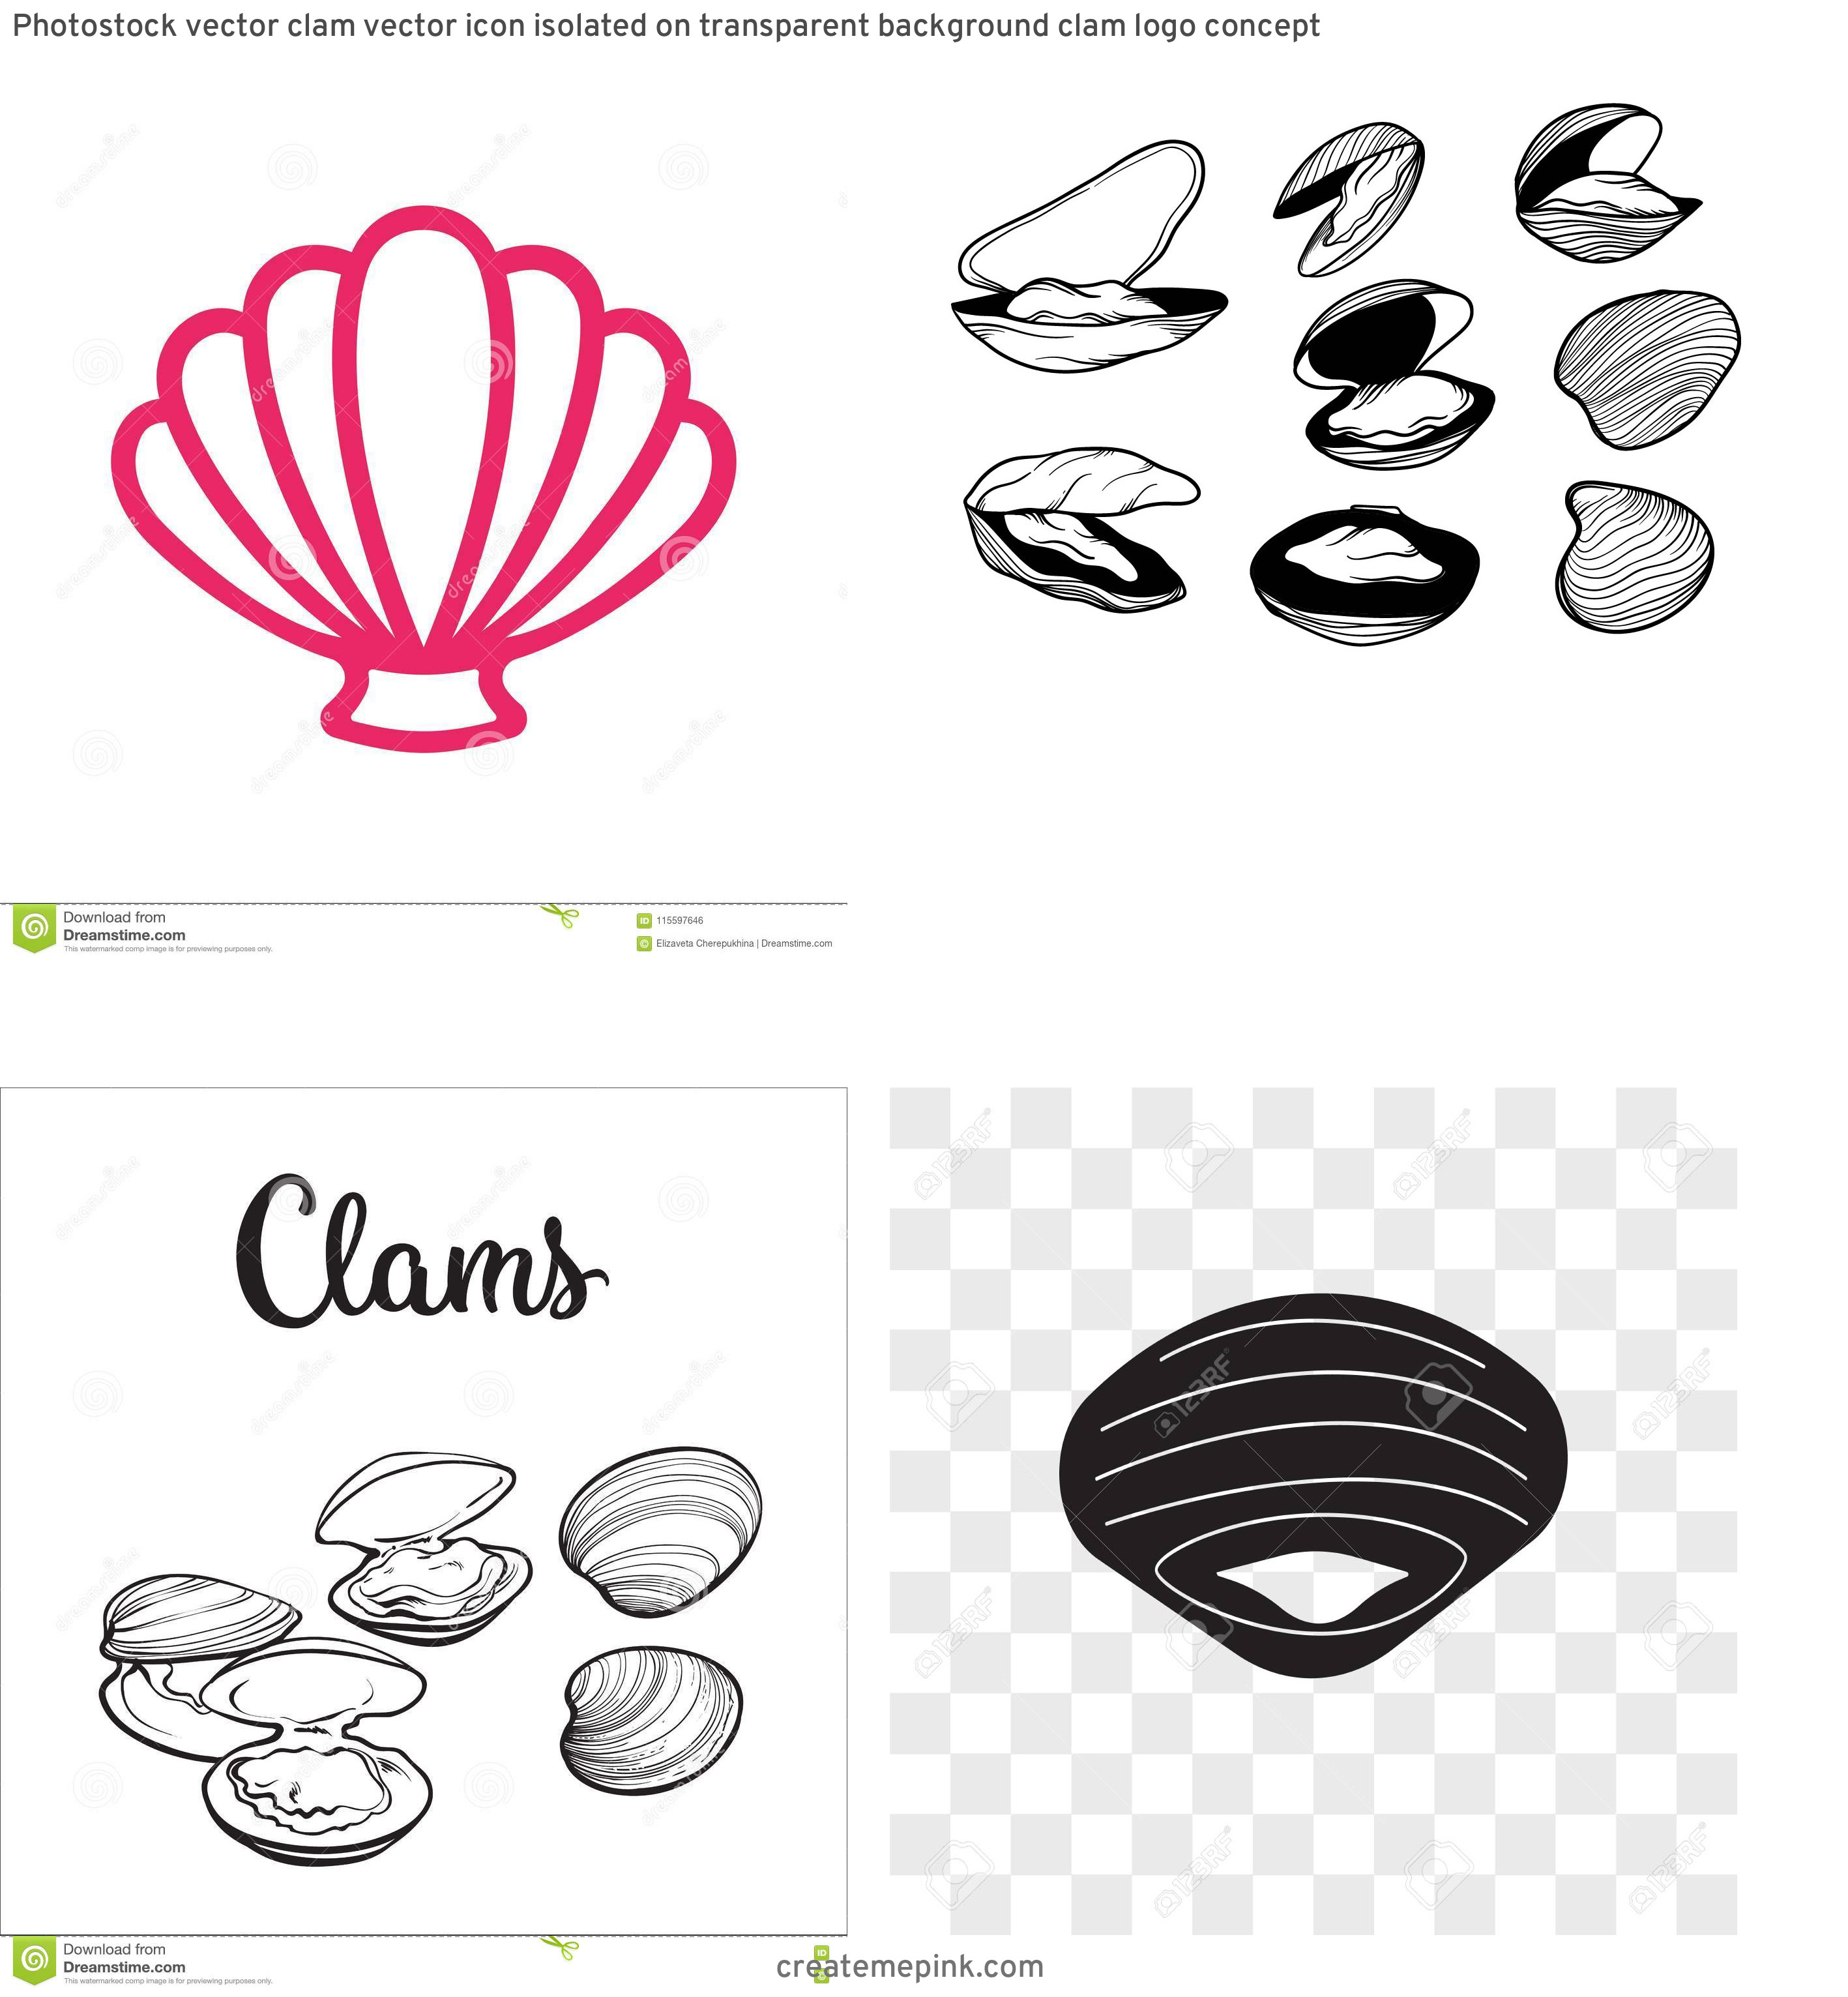 Clam Vector: Photostock Vector Clam Vector Icon Isolated On Transparent Background Clam Logo Concept